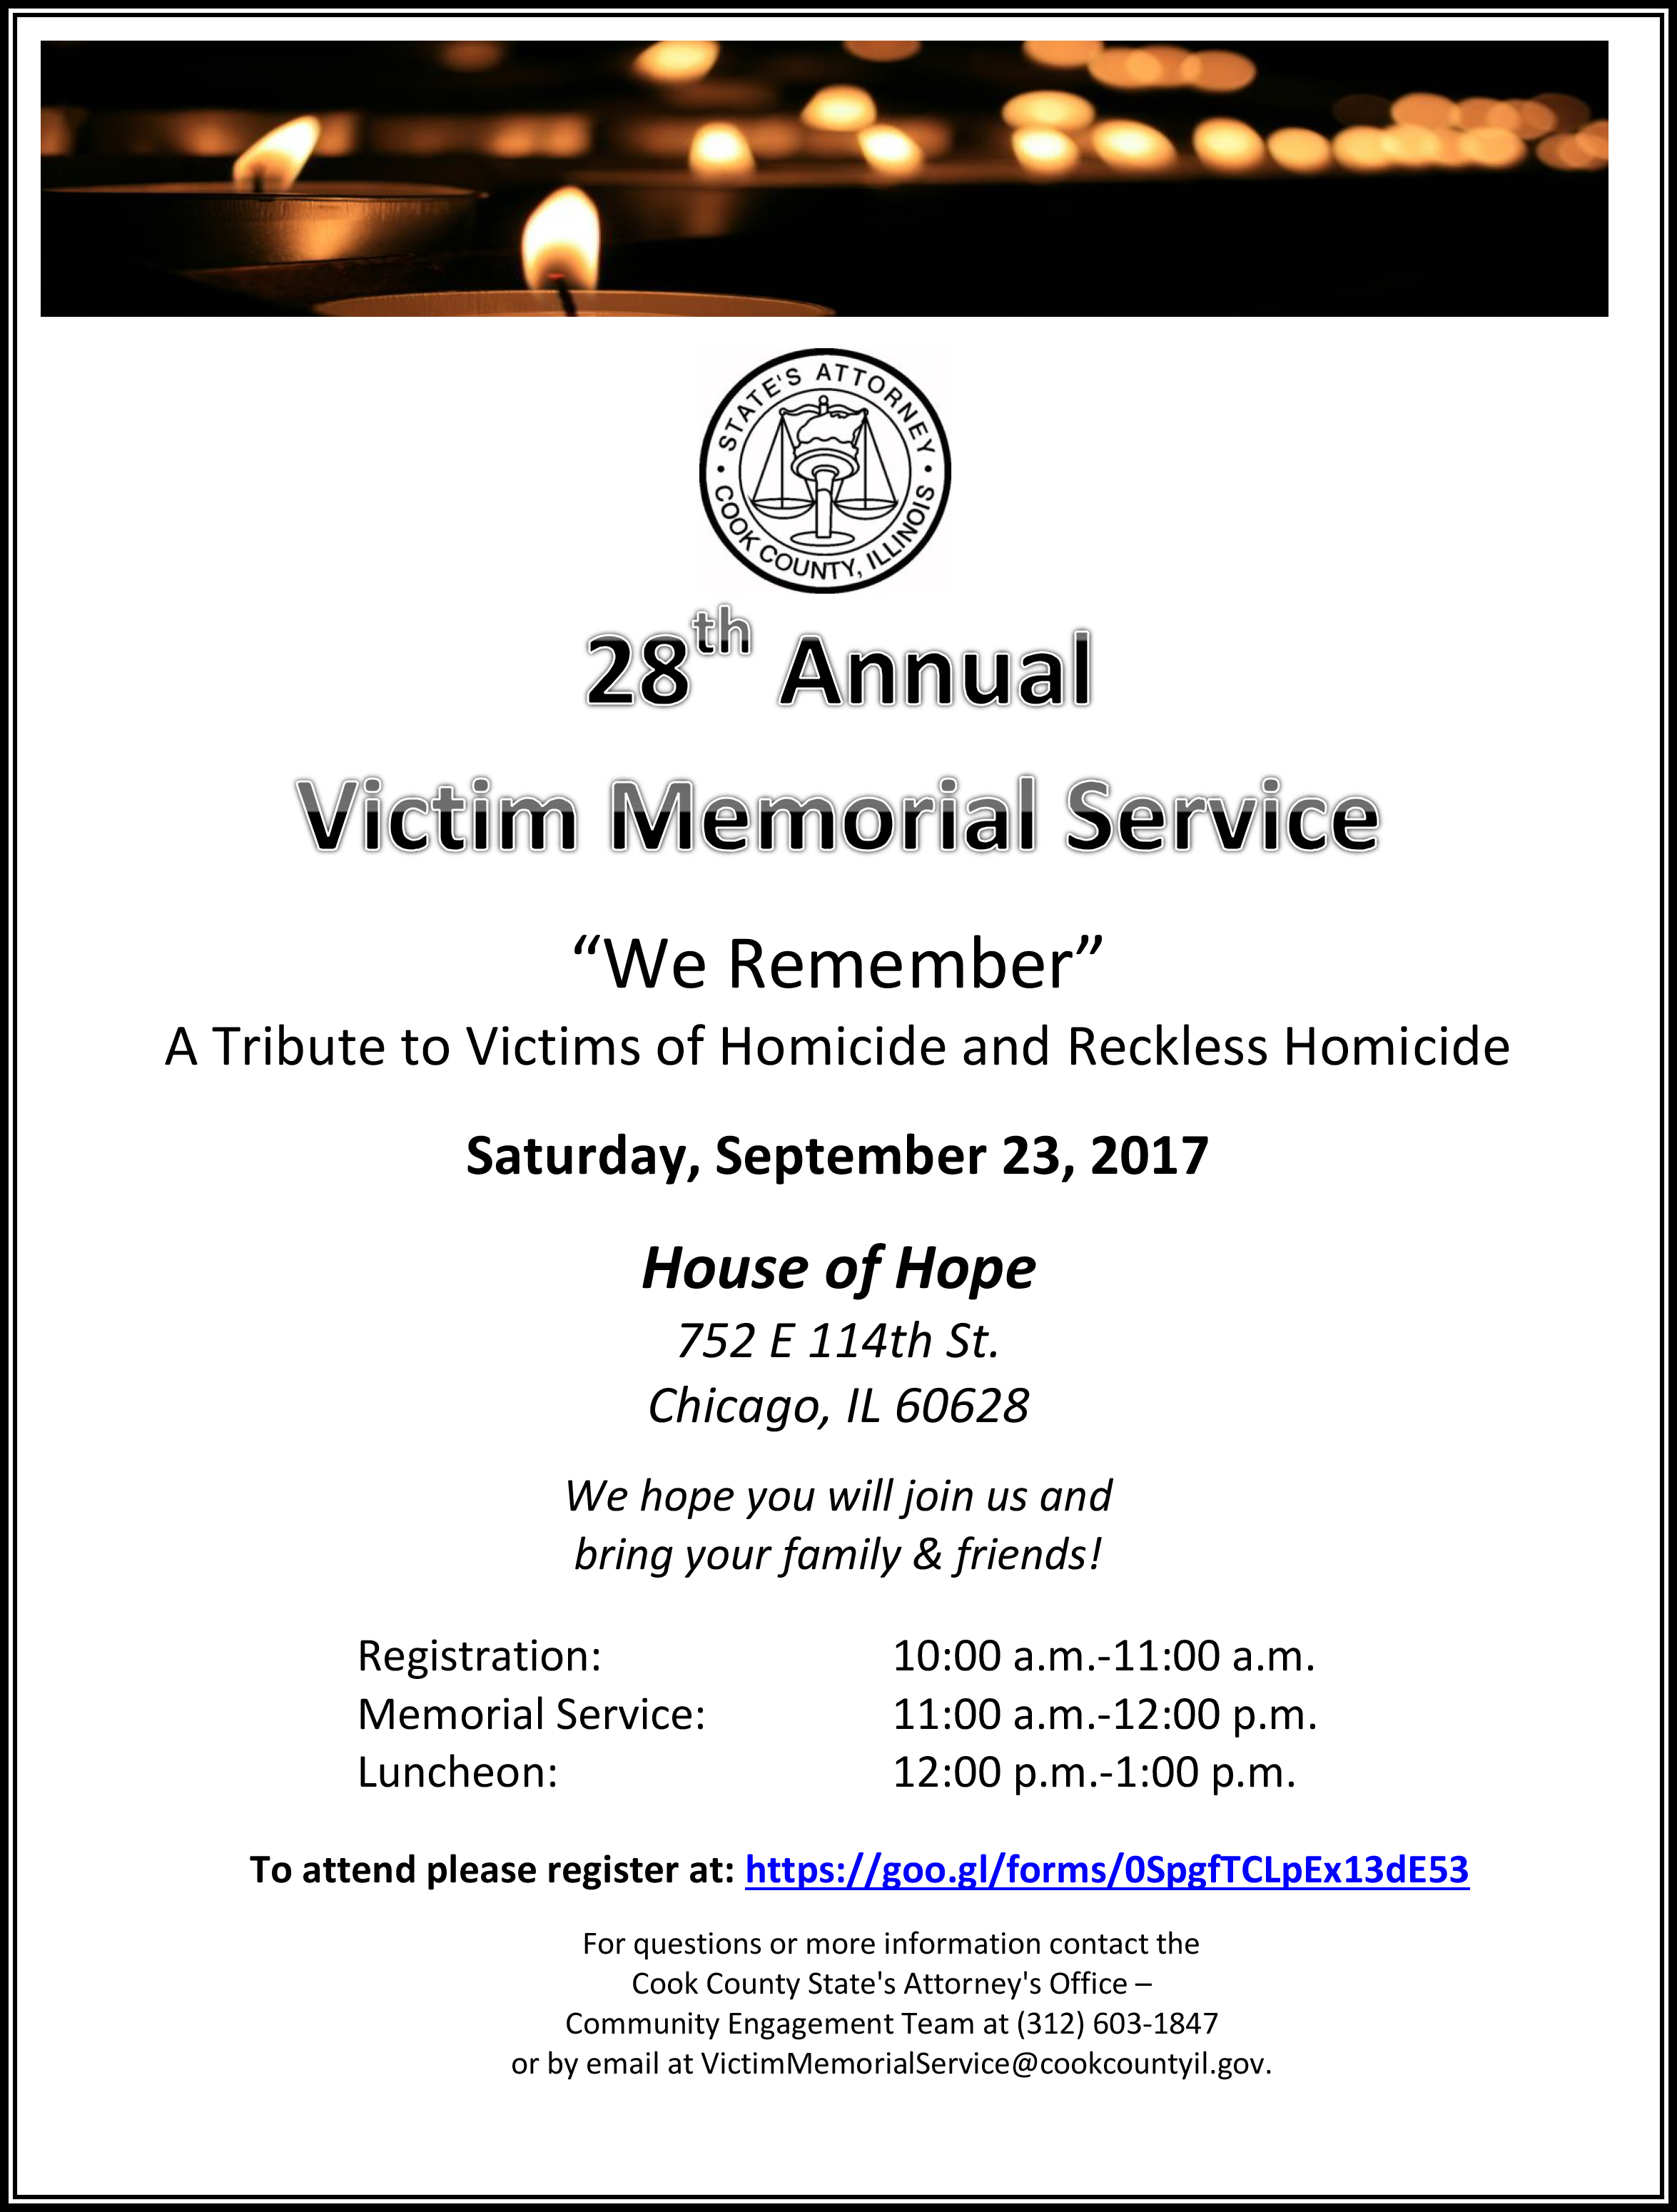 28th Annual Victim Memorial Service Information Flyer